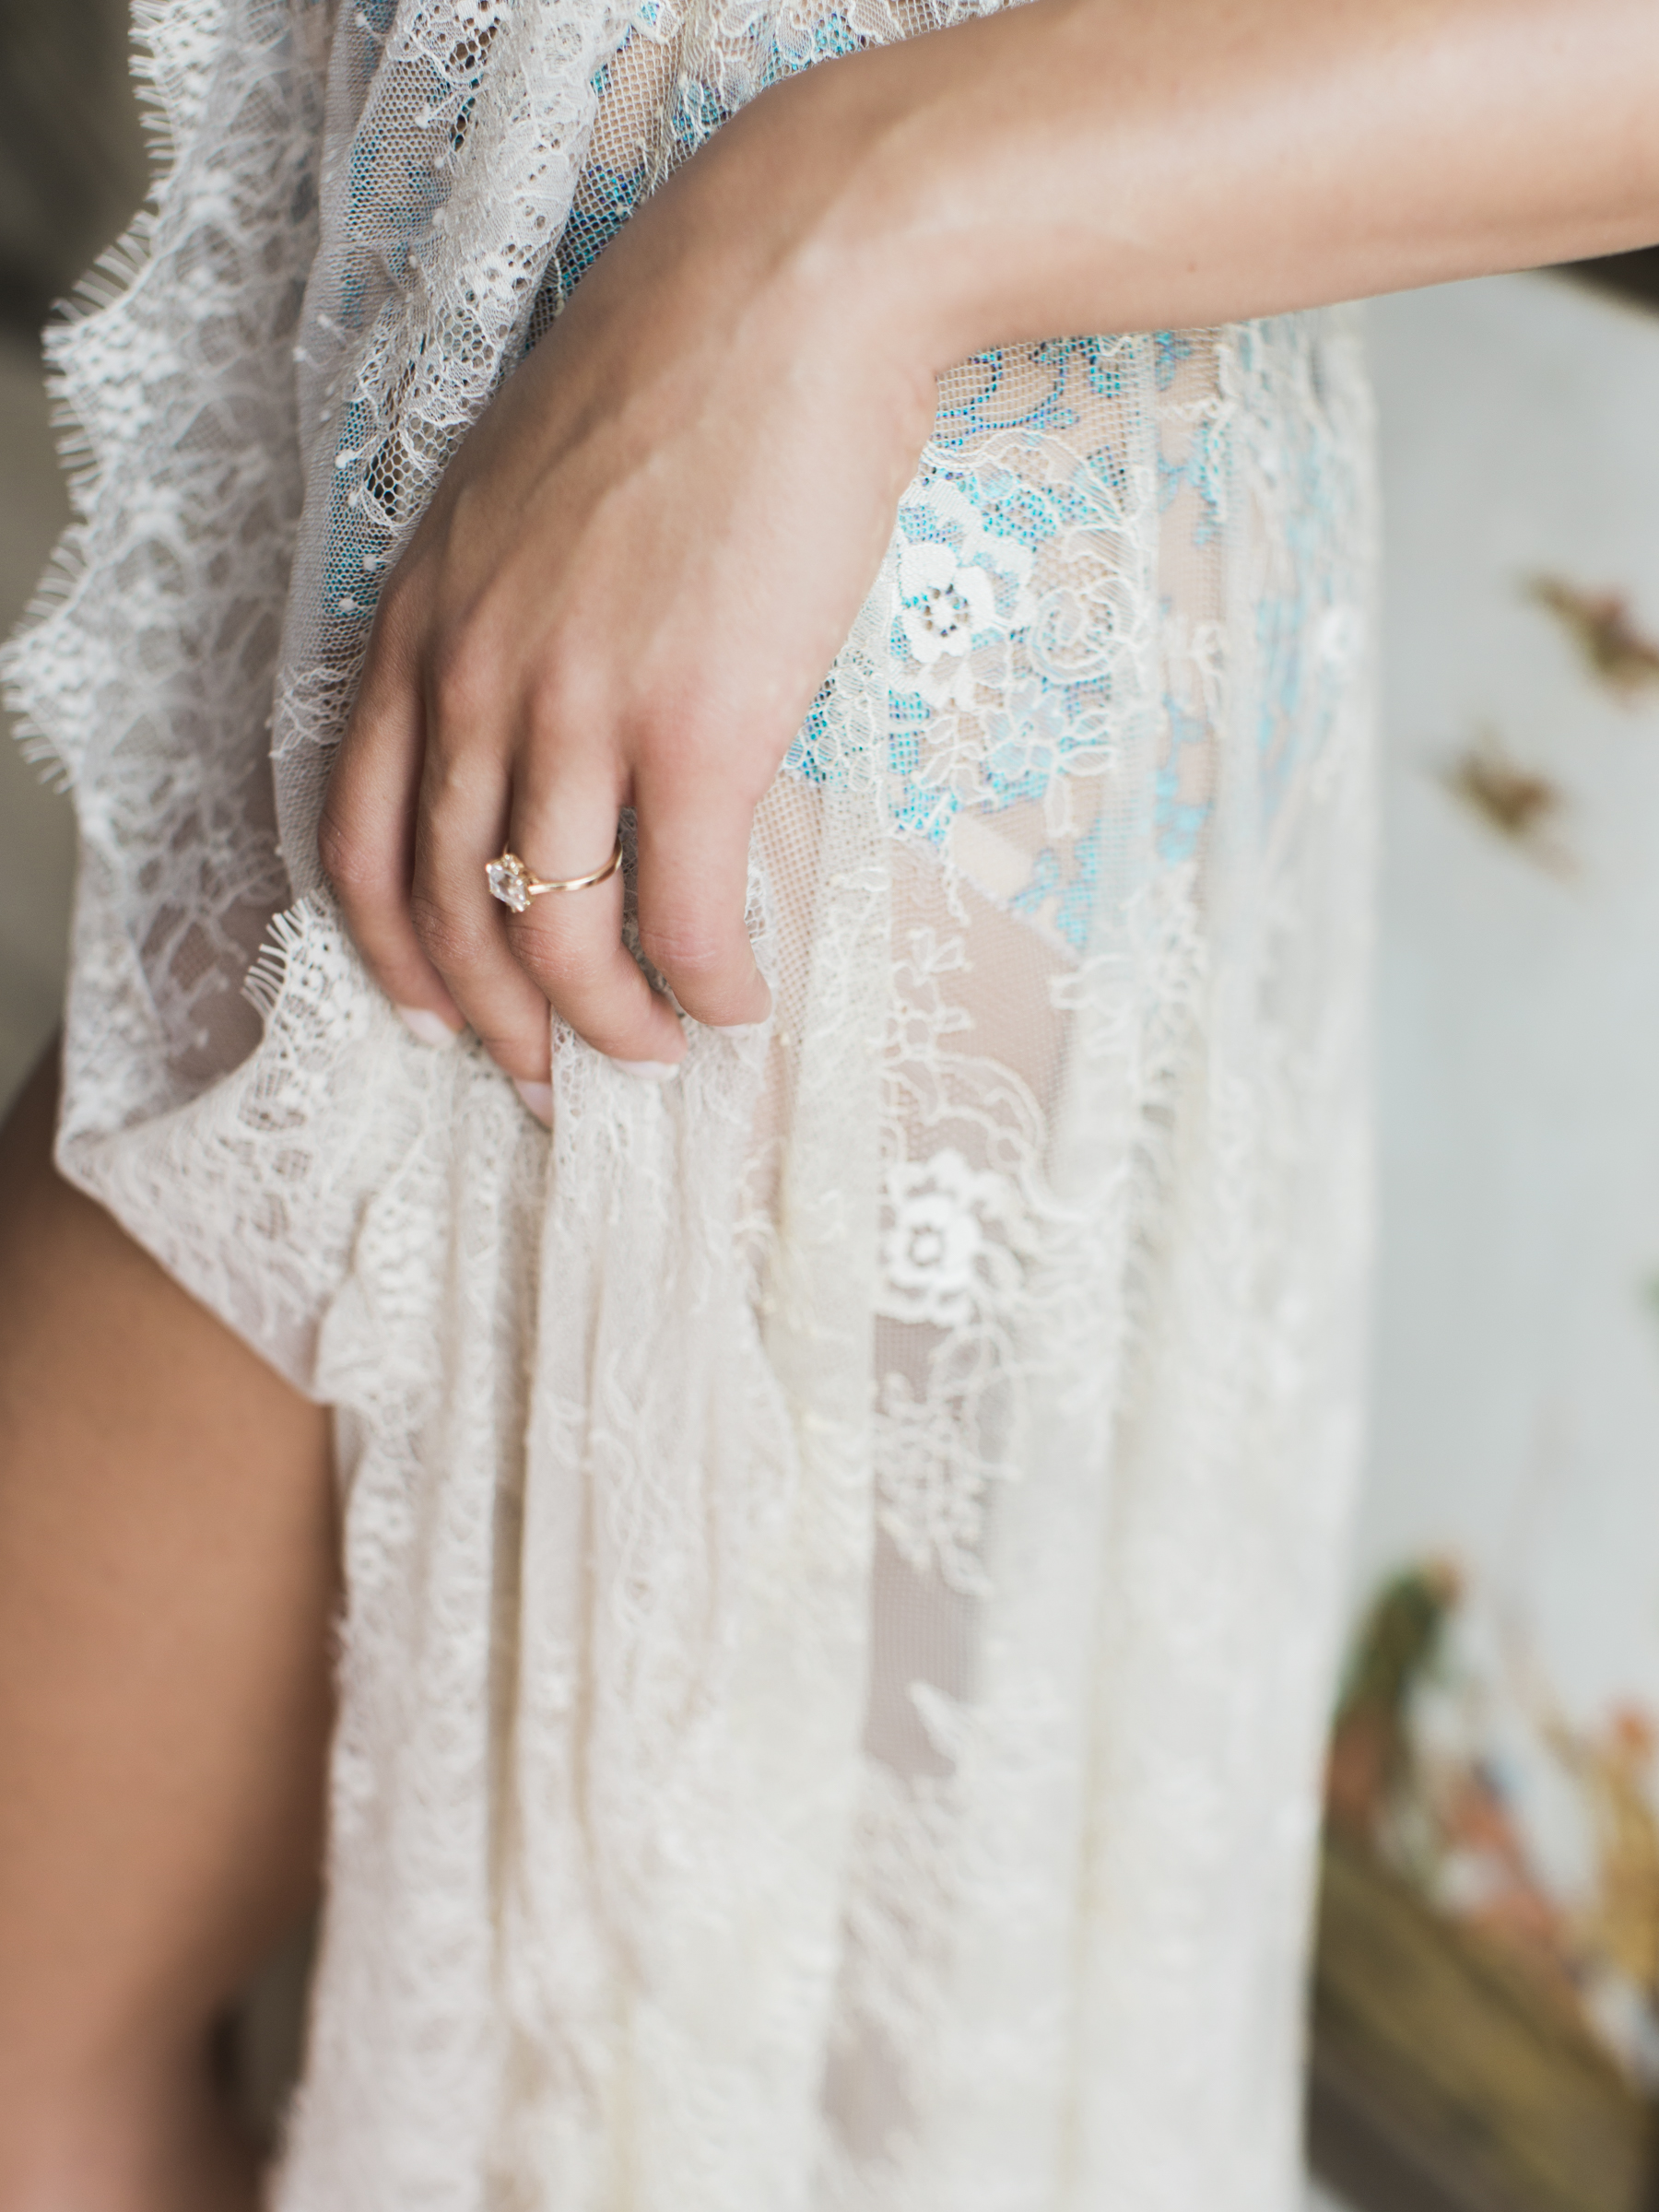 Tuscan Villa Wedding, Events by Reagan, Italy Wedding, Destination Wedding Planner, Florence Italy , Engagement ring